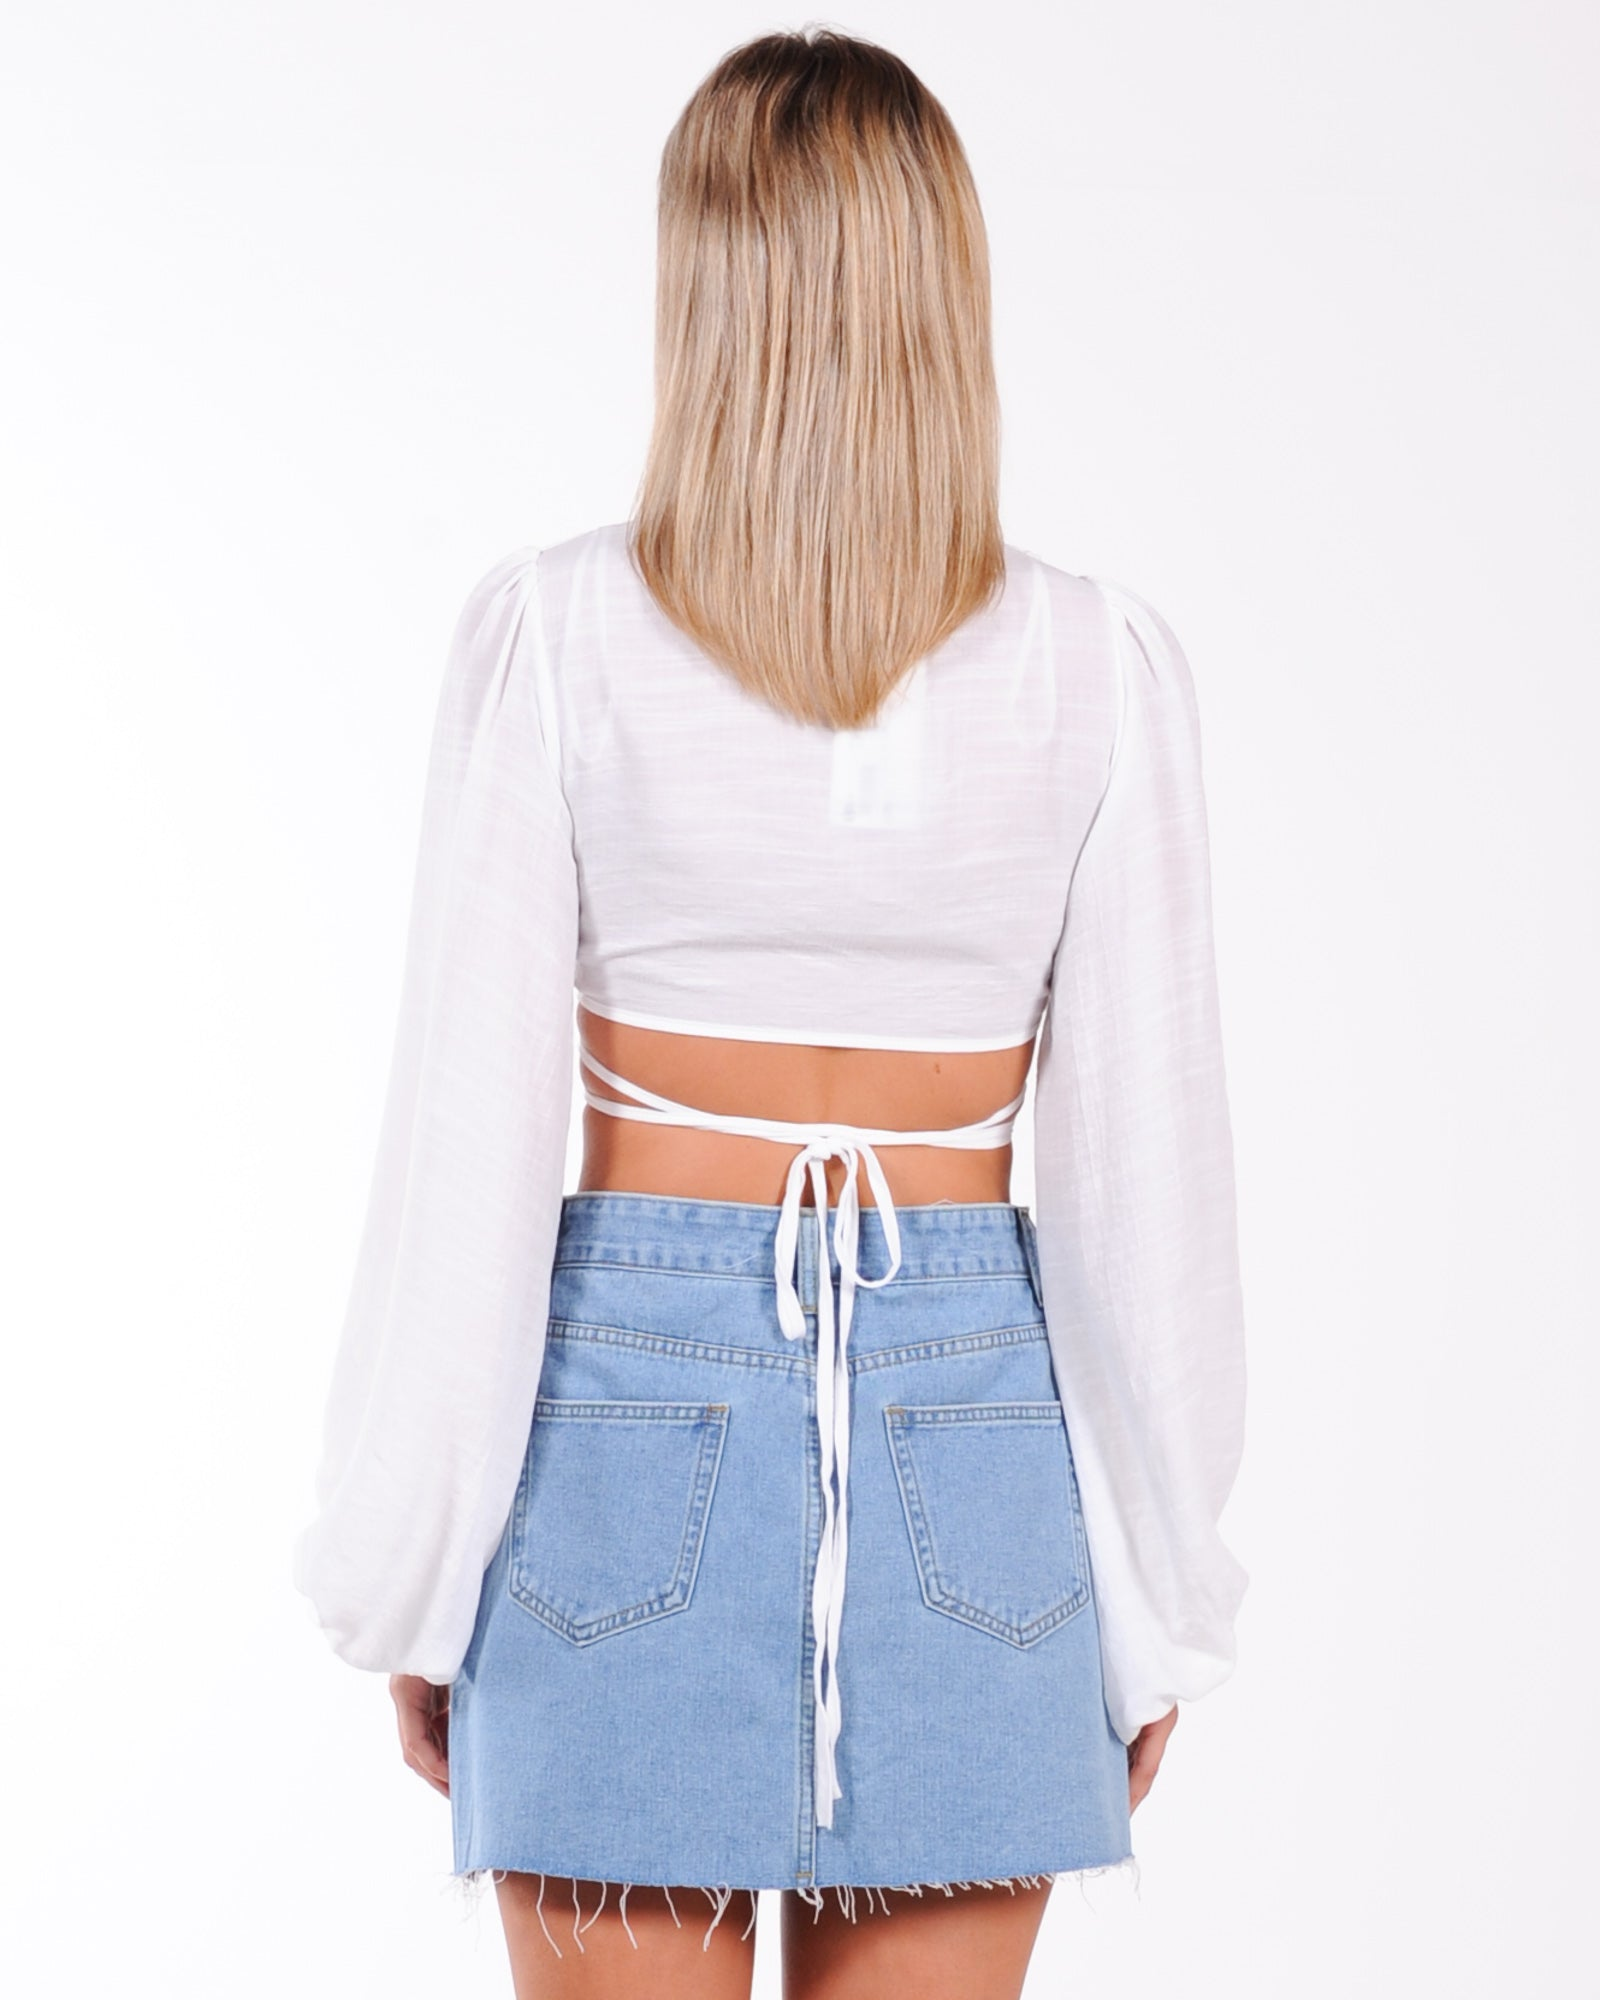 Twisted Love Wrap Top - White